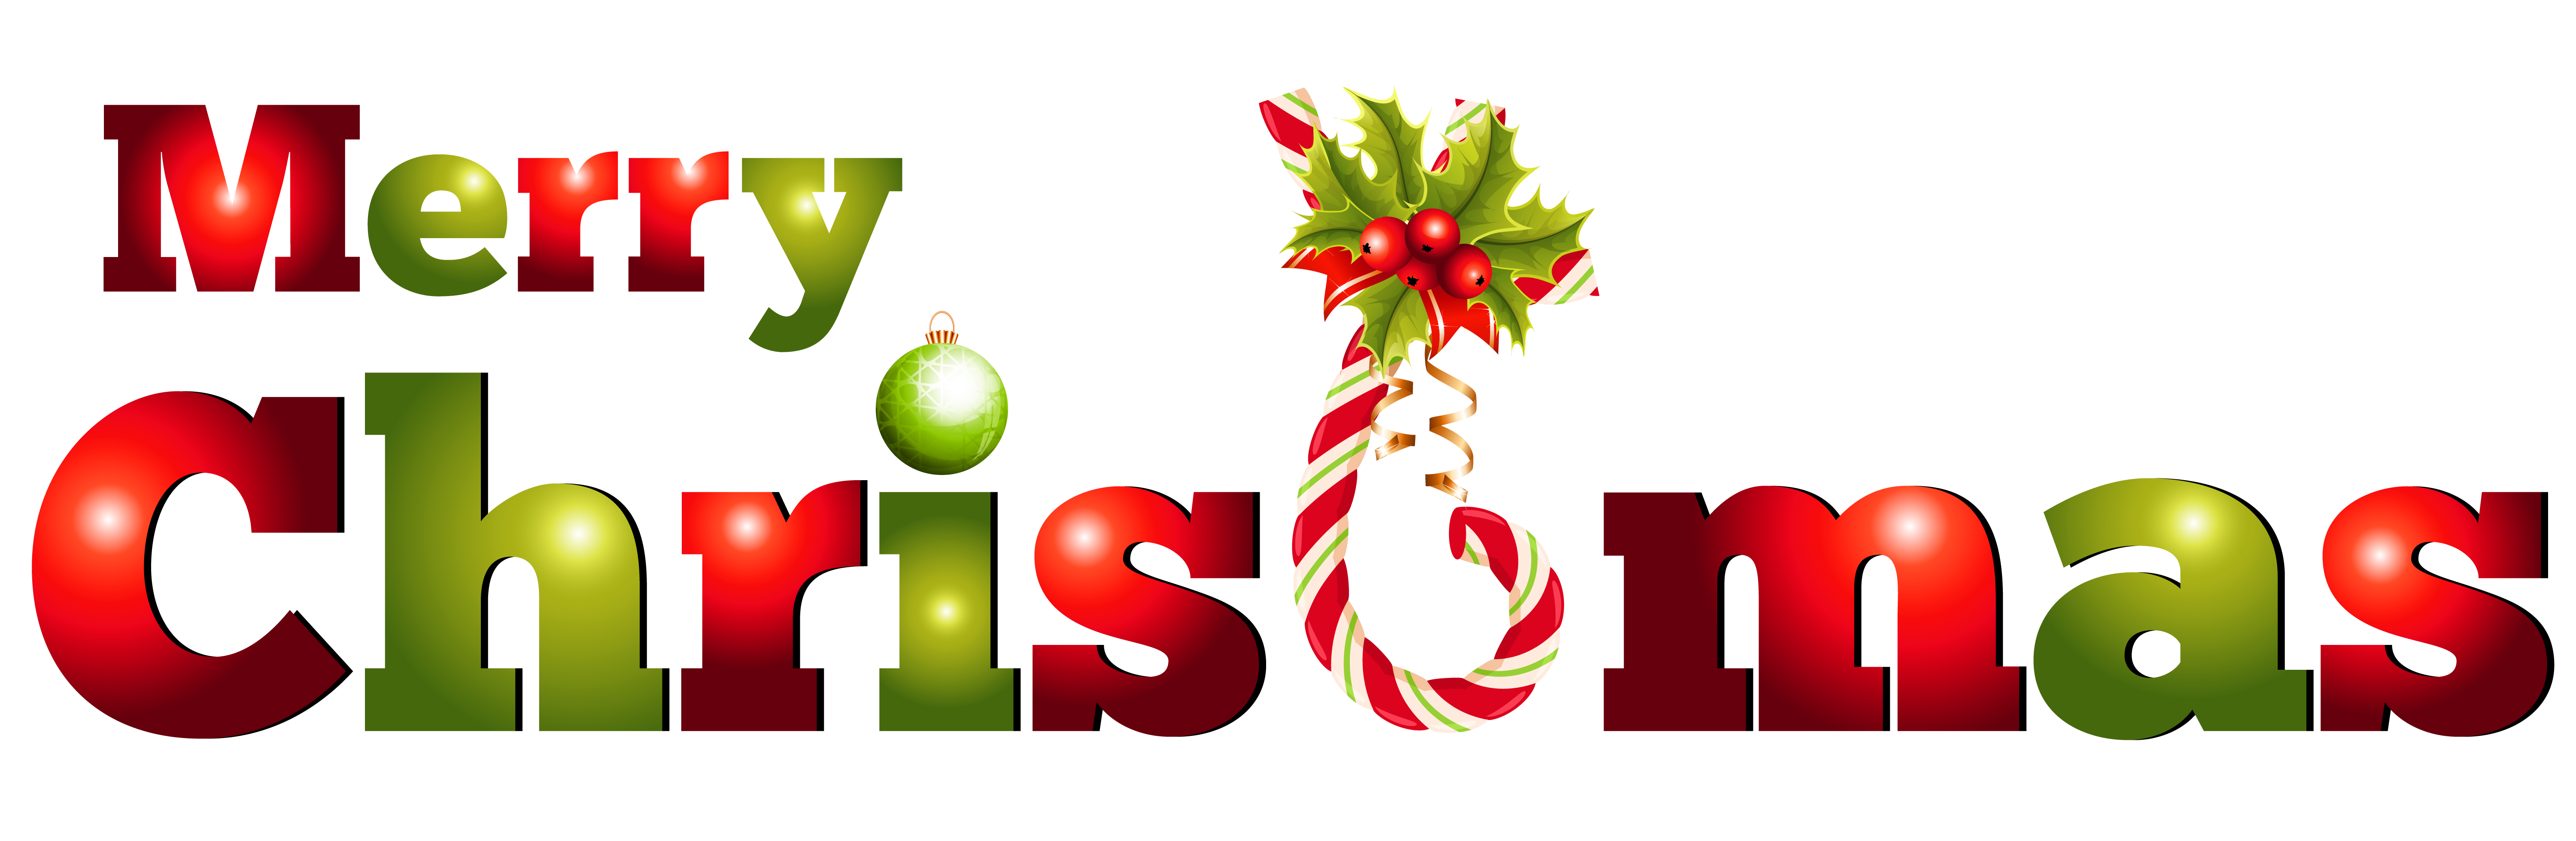 Merry Christmas Text PNG - 16074